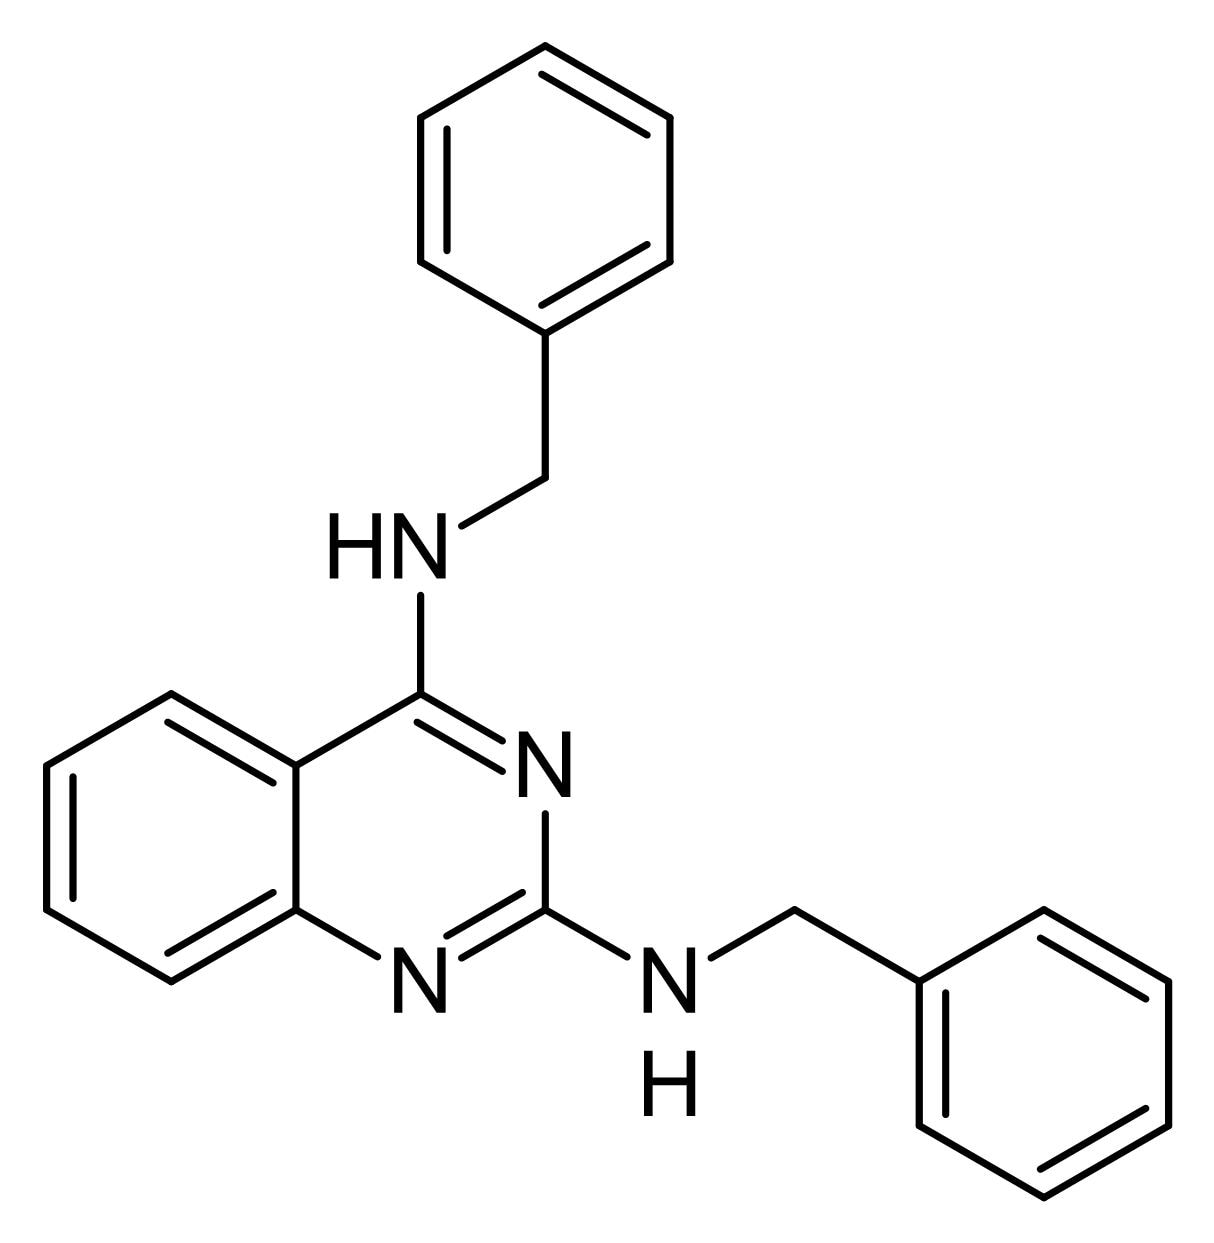 Chemical Structure - DBeQ, p97 ATPase inhibitor (ab141254)